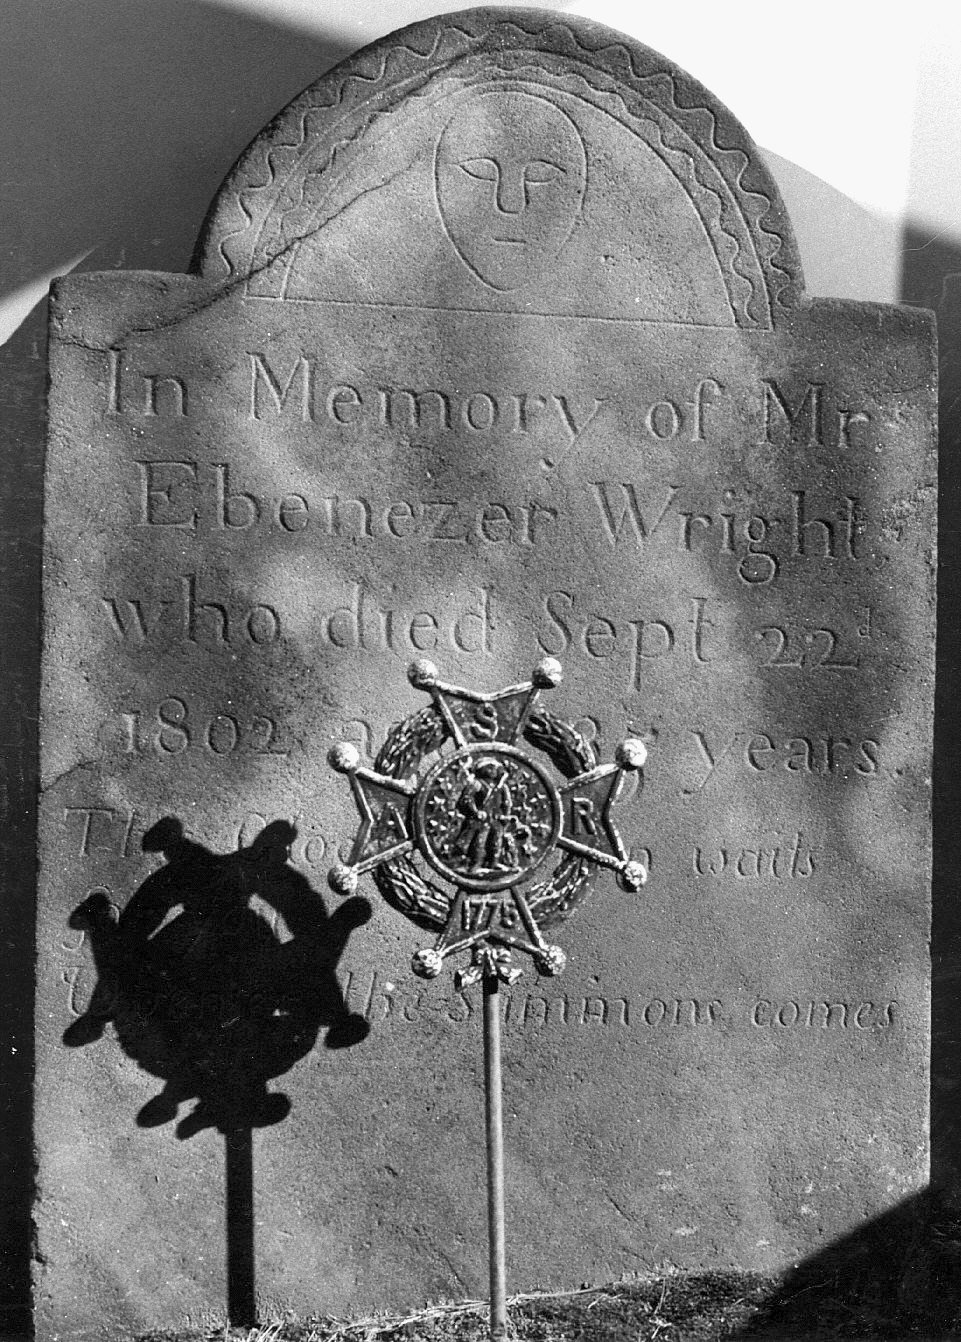 Wright, Ebenezer